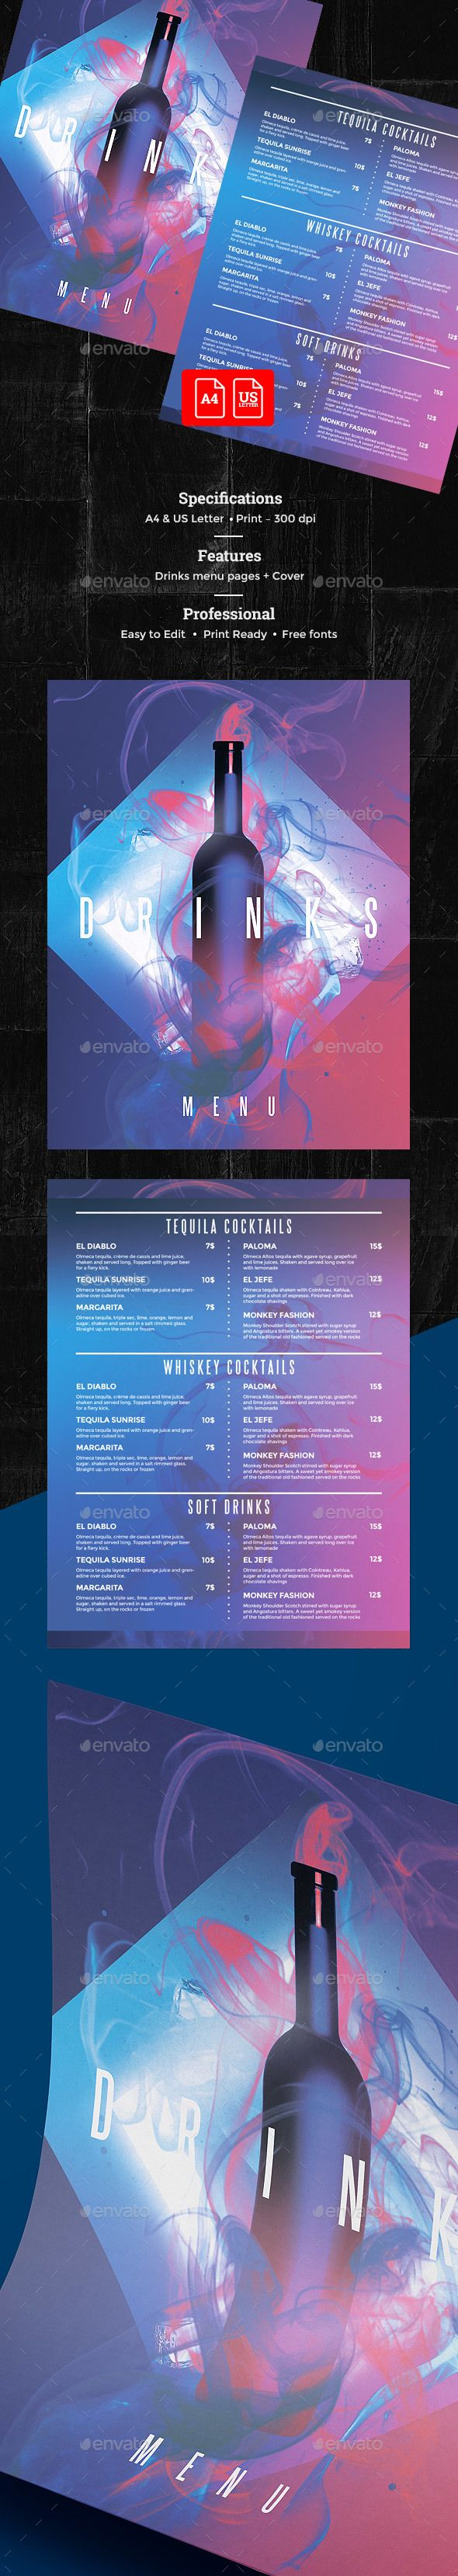 Drinks Menu — Photoshop PSD #alcohol #8.5x11 • Download ➝ https://graphicriver.net/item/drinks-menu/19856783?ref=pxcr